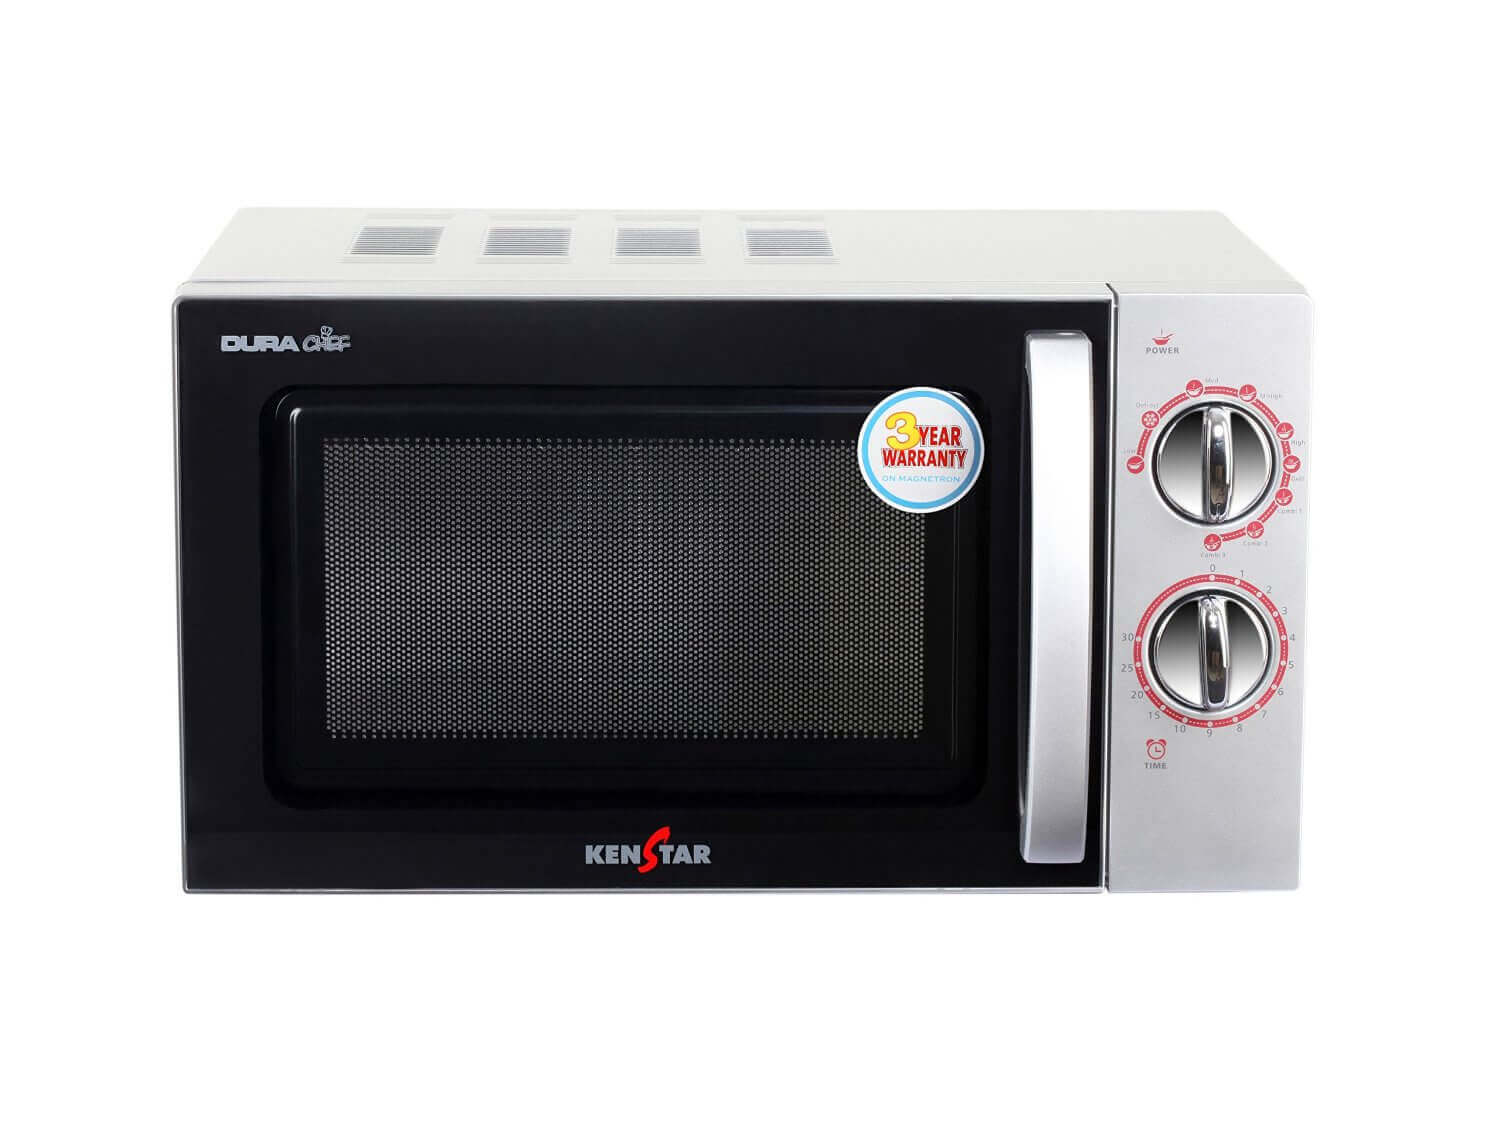 Best Microwave Ovens Under 6 000 In India 2020 Zelect